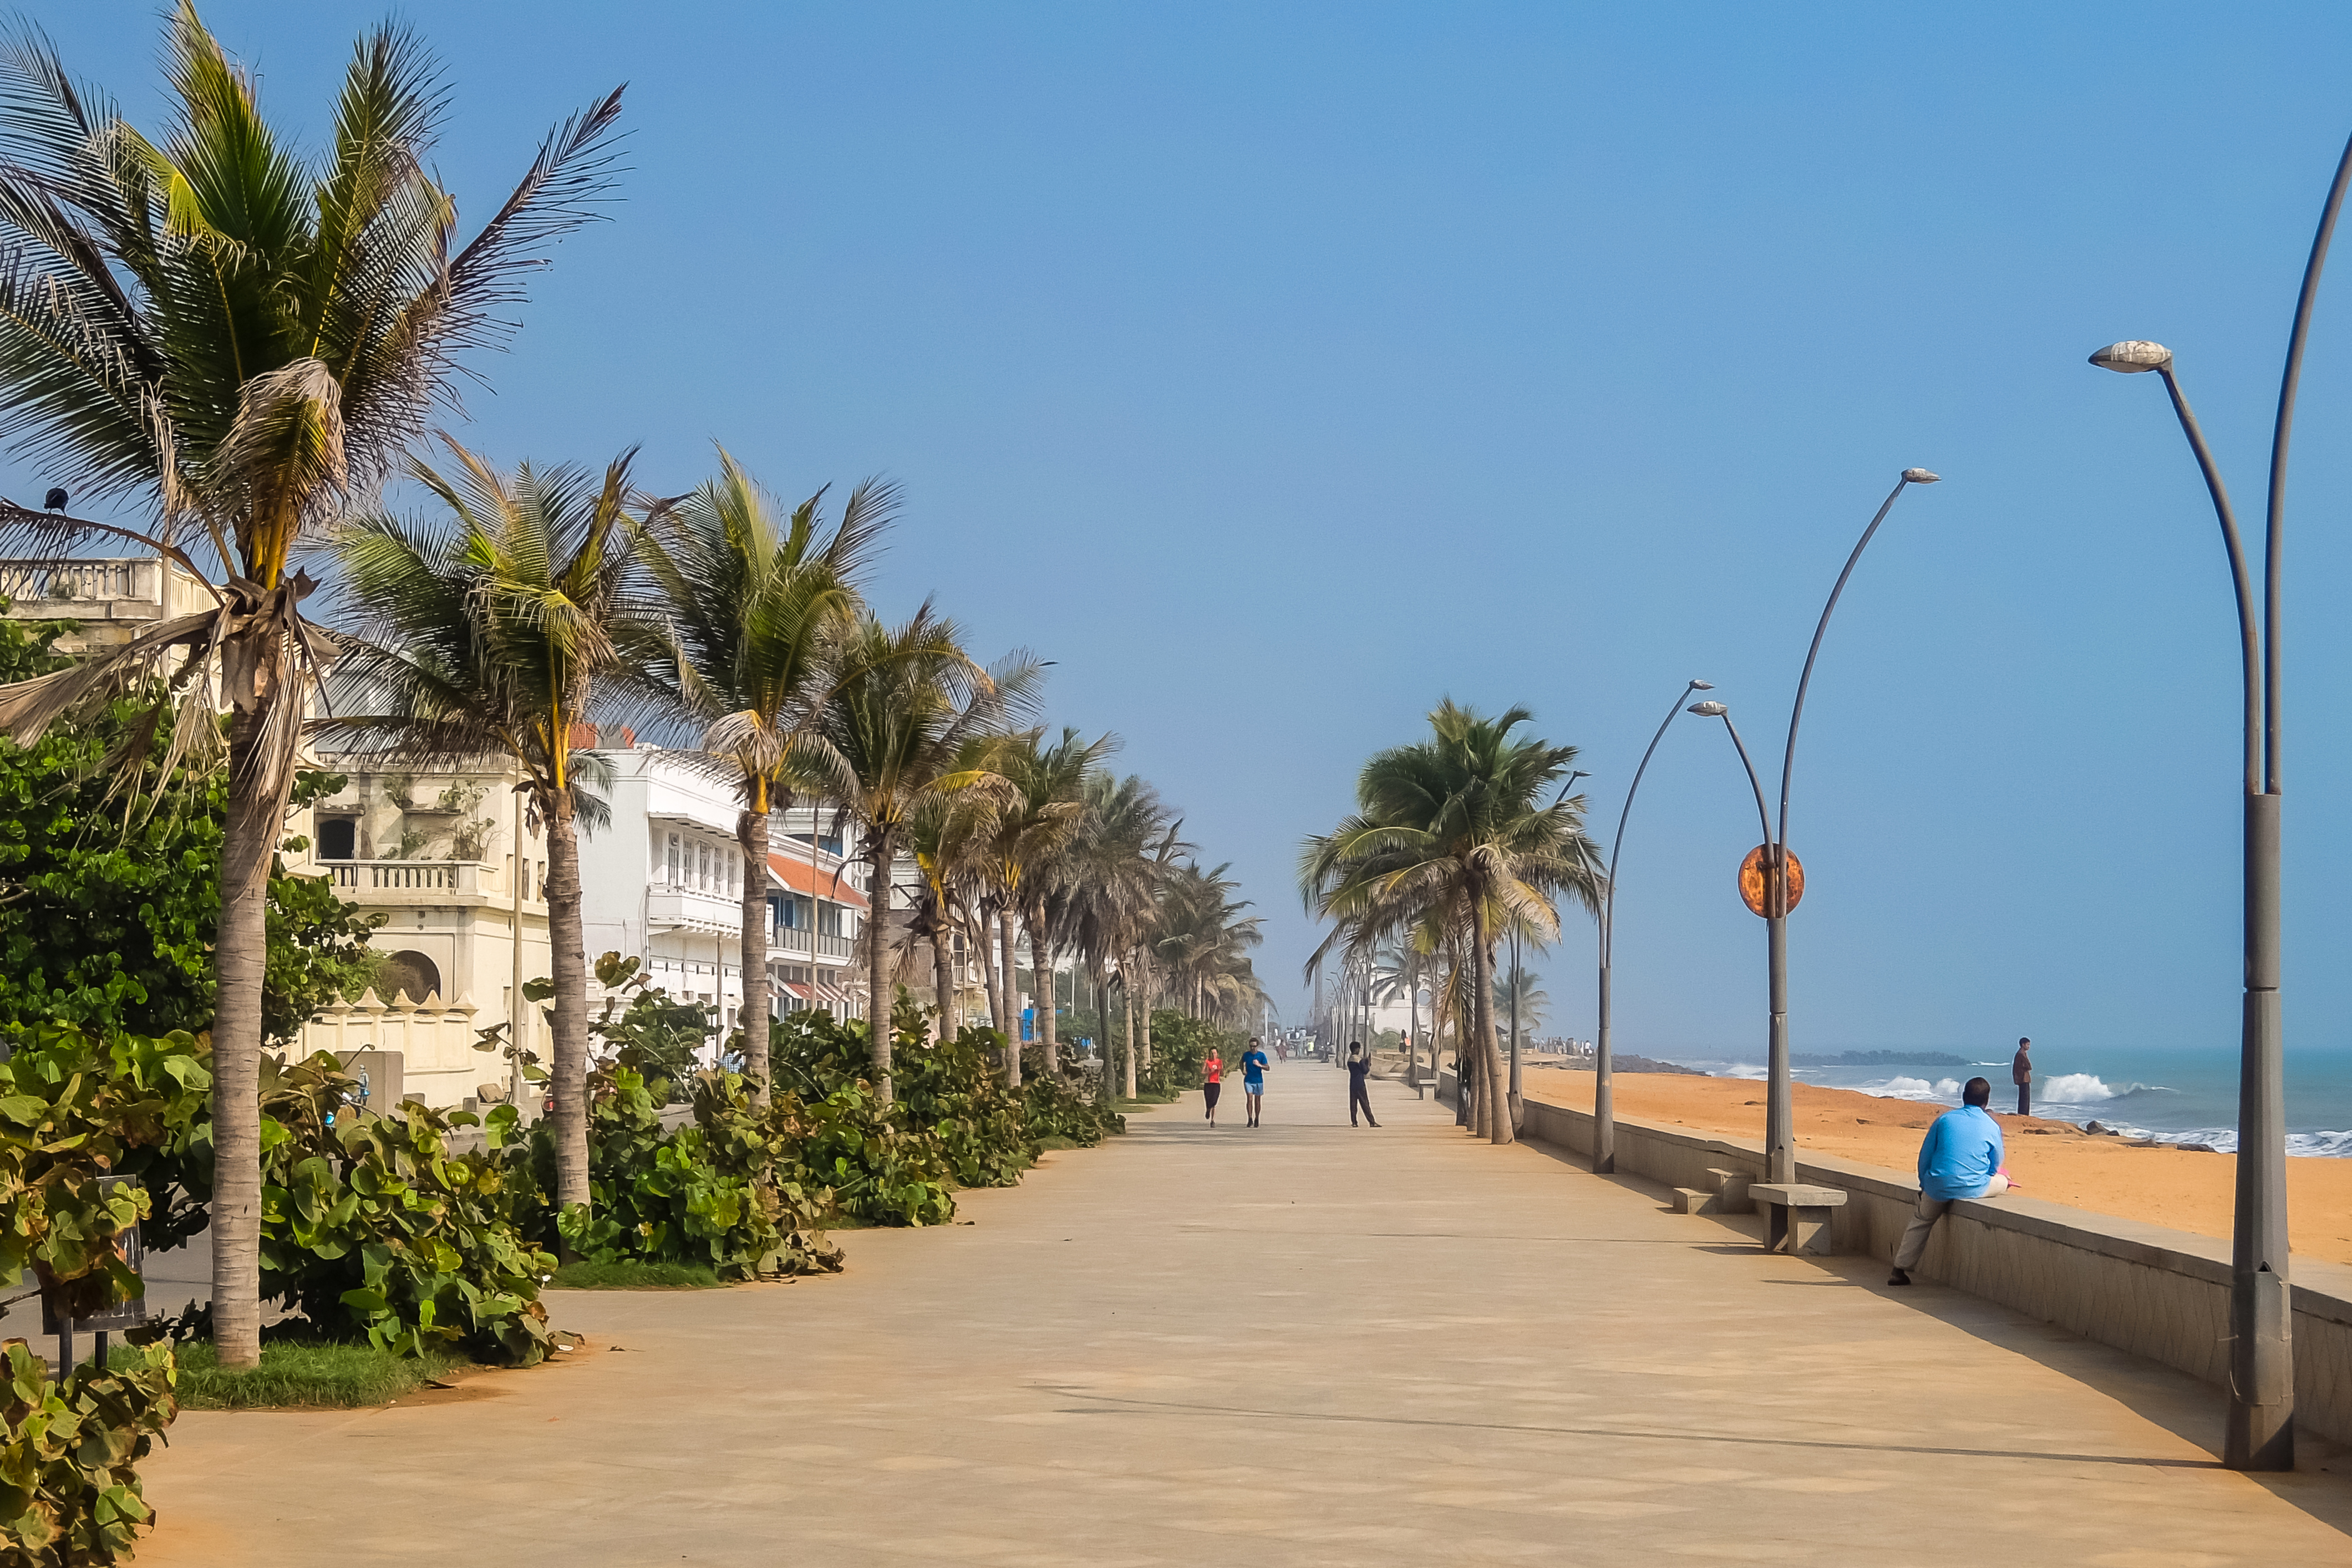 Looking to travel to southern India? Then, check out how to see Pondicherry, India in 3 days and learn more about this beautiful Indian destination!